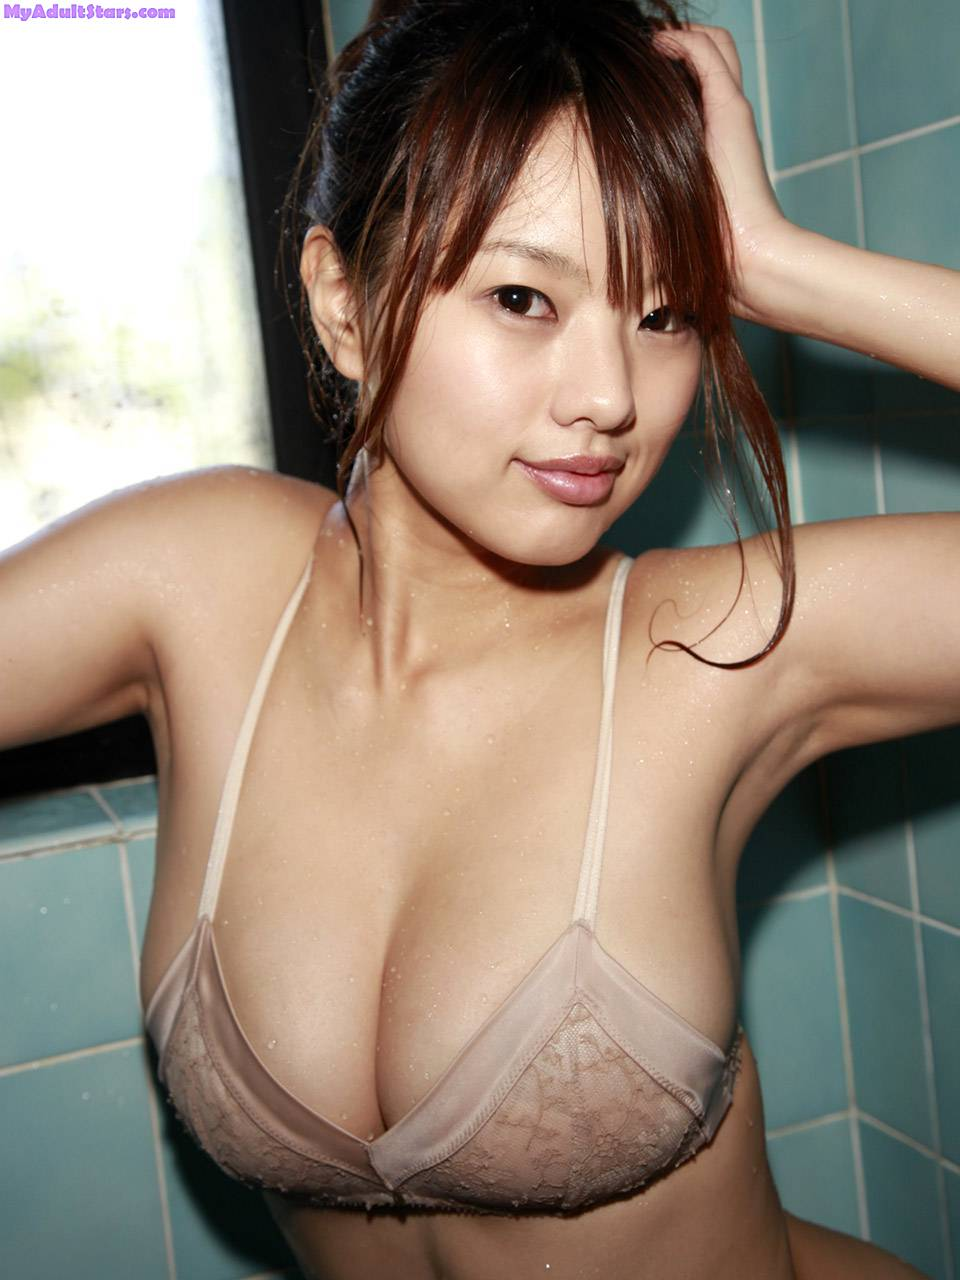 Sexy Asian Girls With Big Boobs Vol 1.4